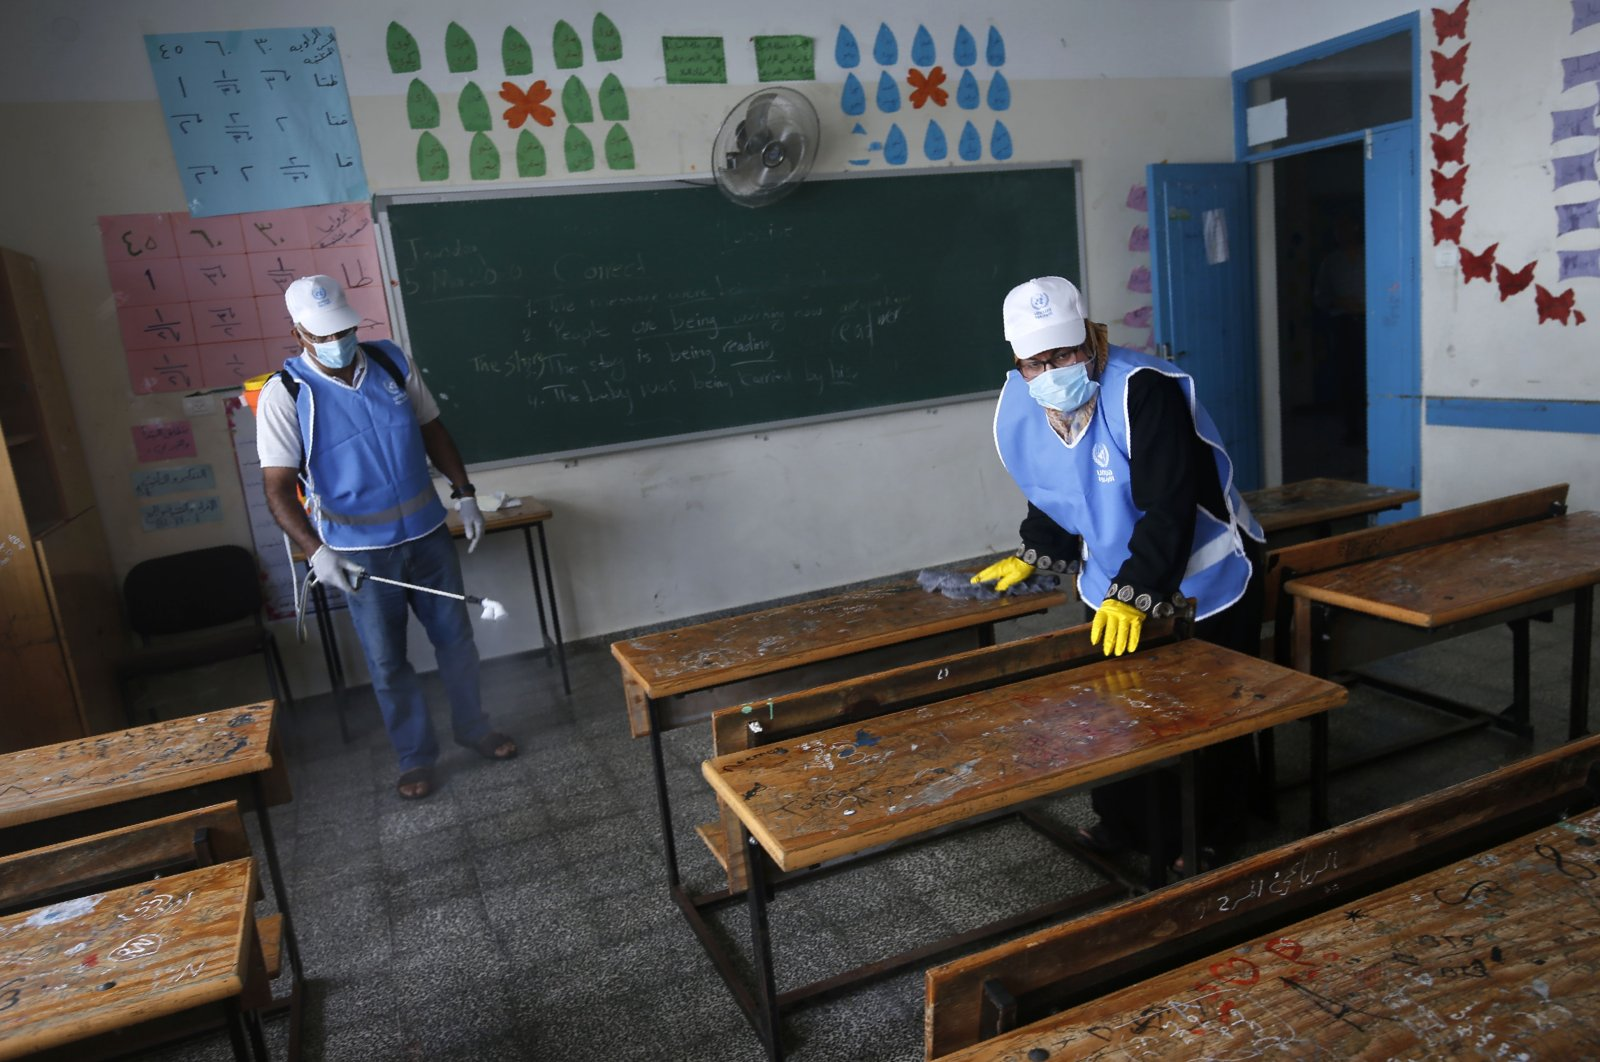 Palestinian workers wearing protective face masks sanitises a classroom in a United Nations-run school before a new academic year starts, amid concerns about the spread of COVID-19, in Gaza City, Aug. 5, 2020. (AFP Photo)